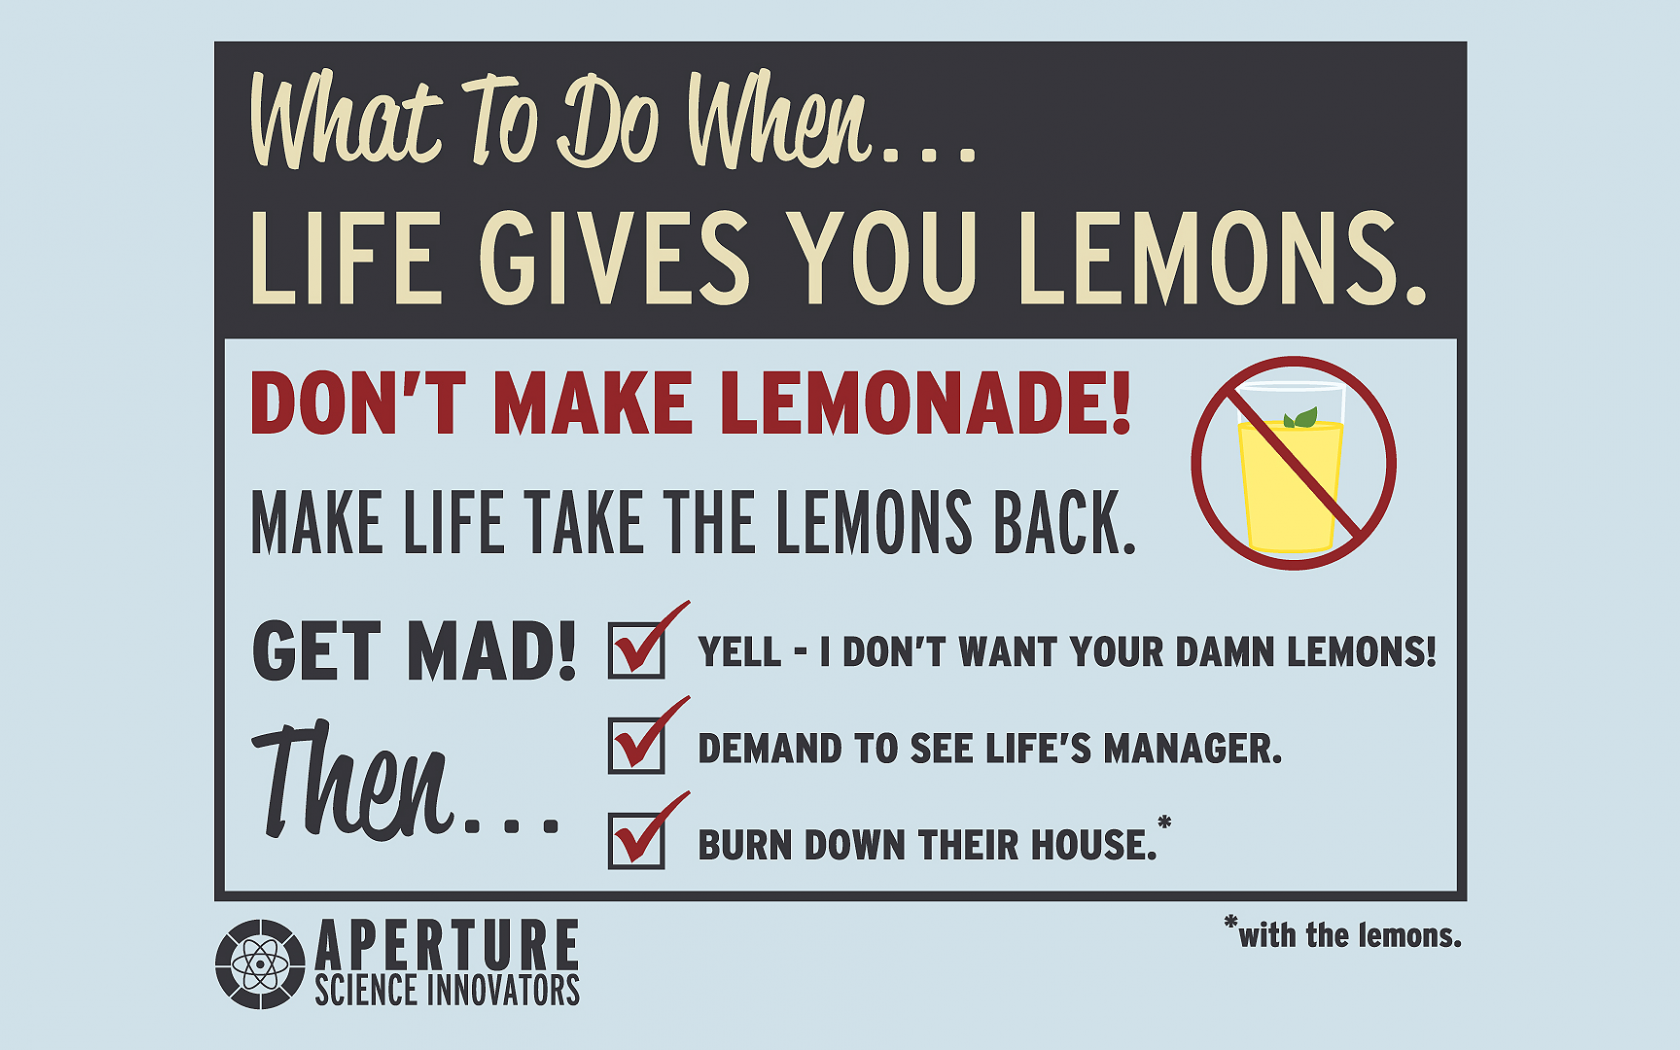 if life gives you lemons quote meaning